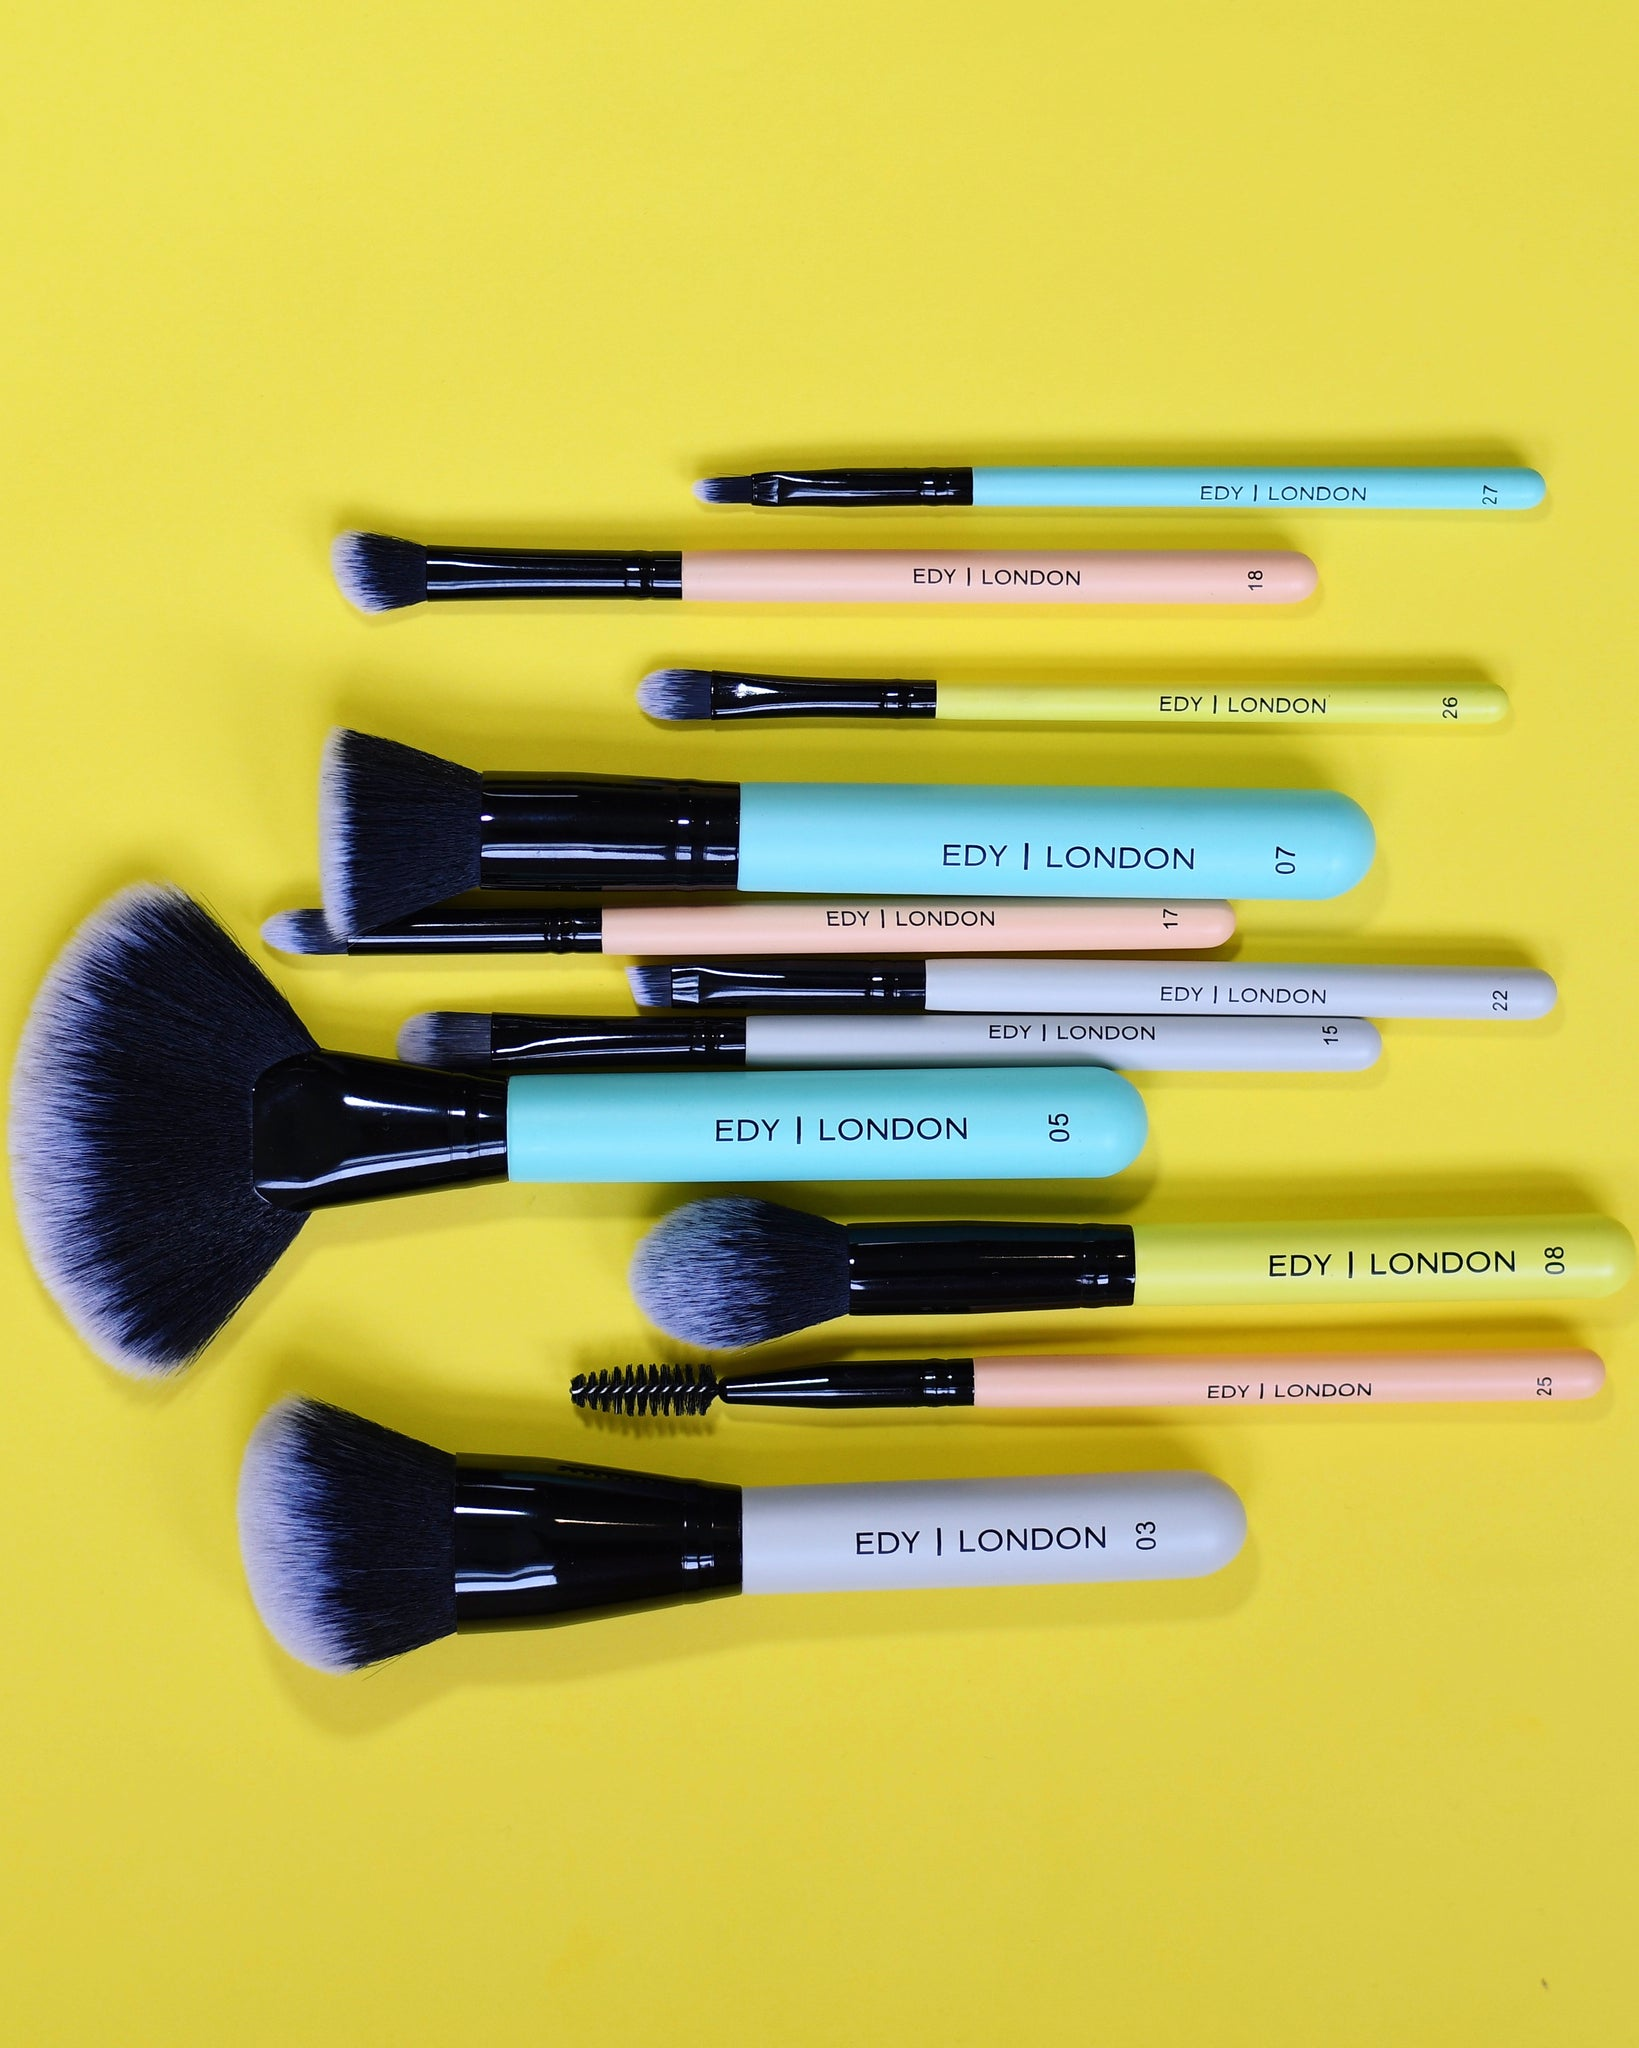 Edy London Brushes